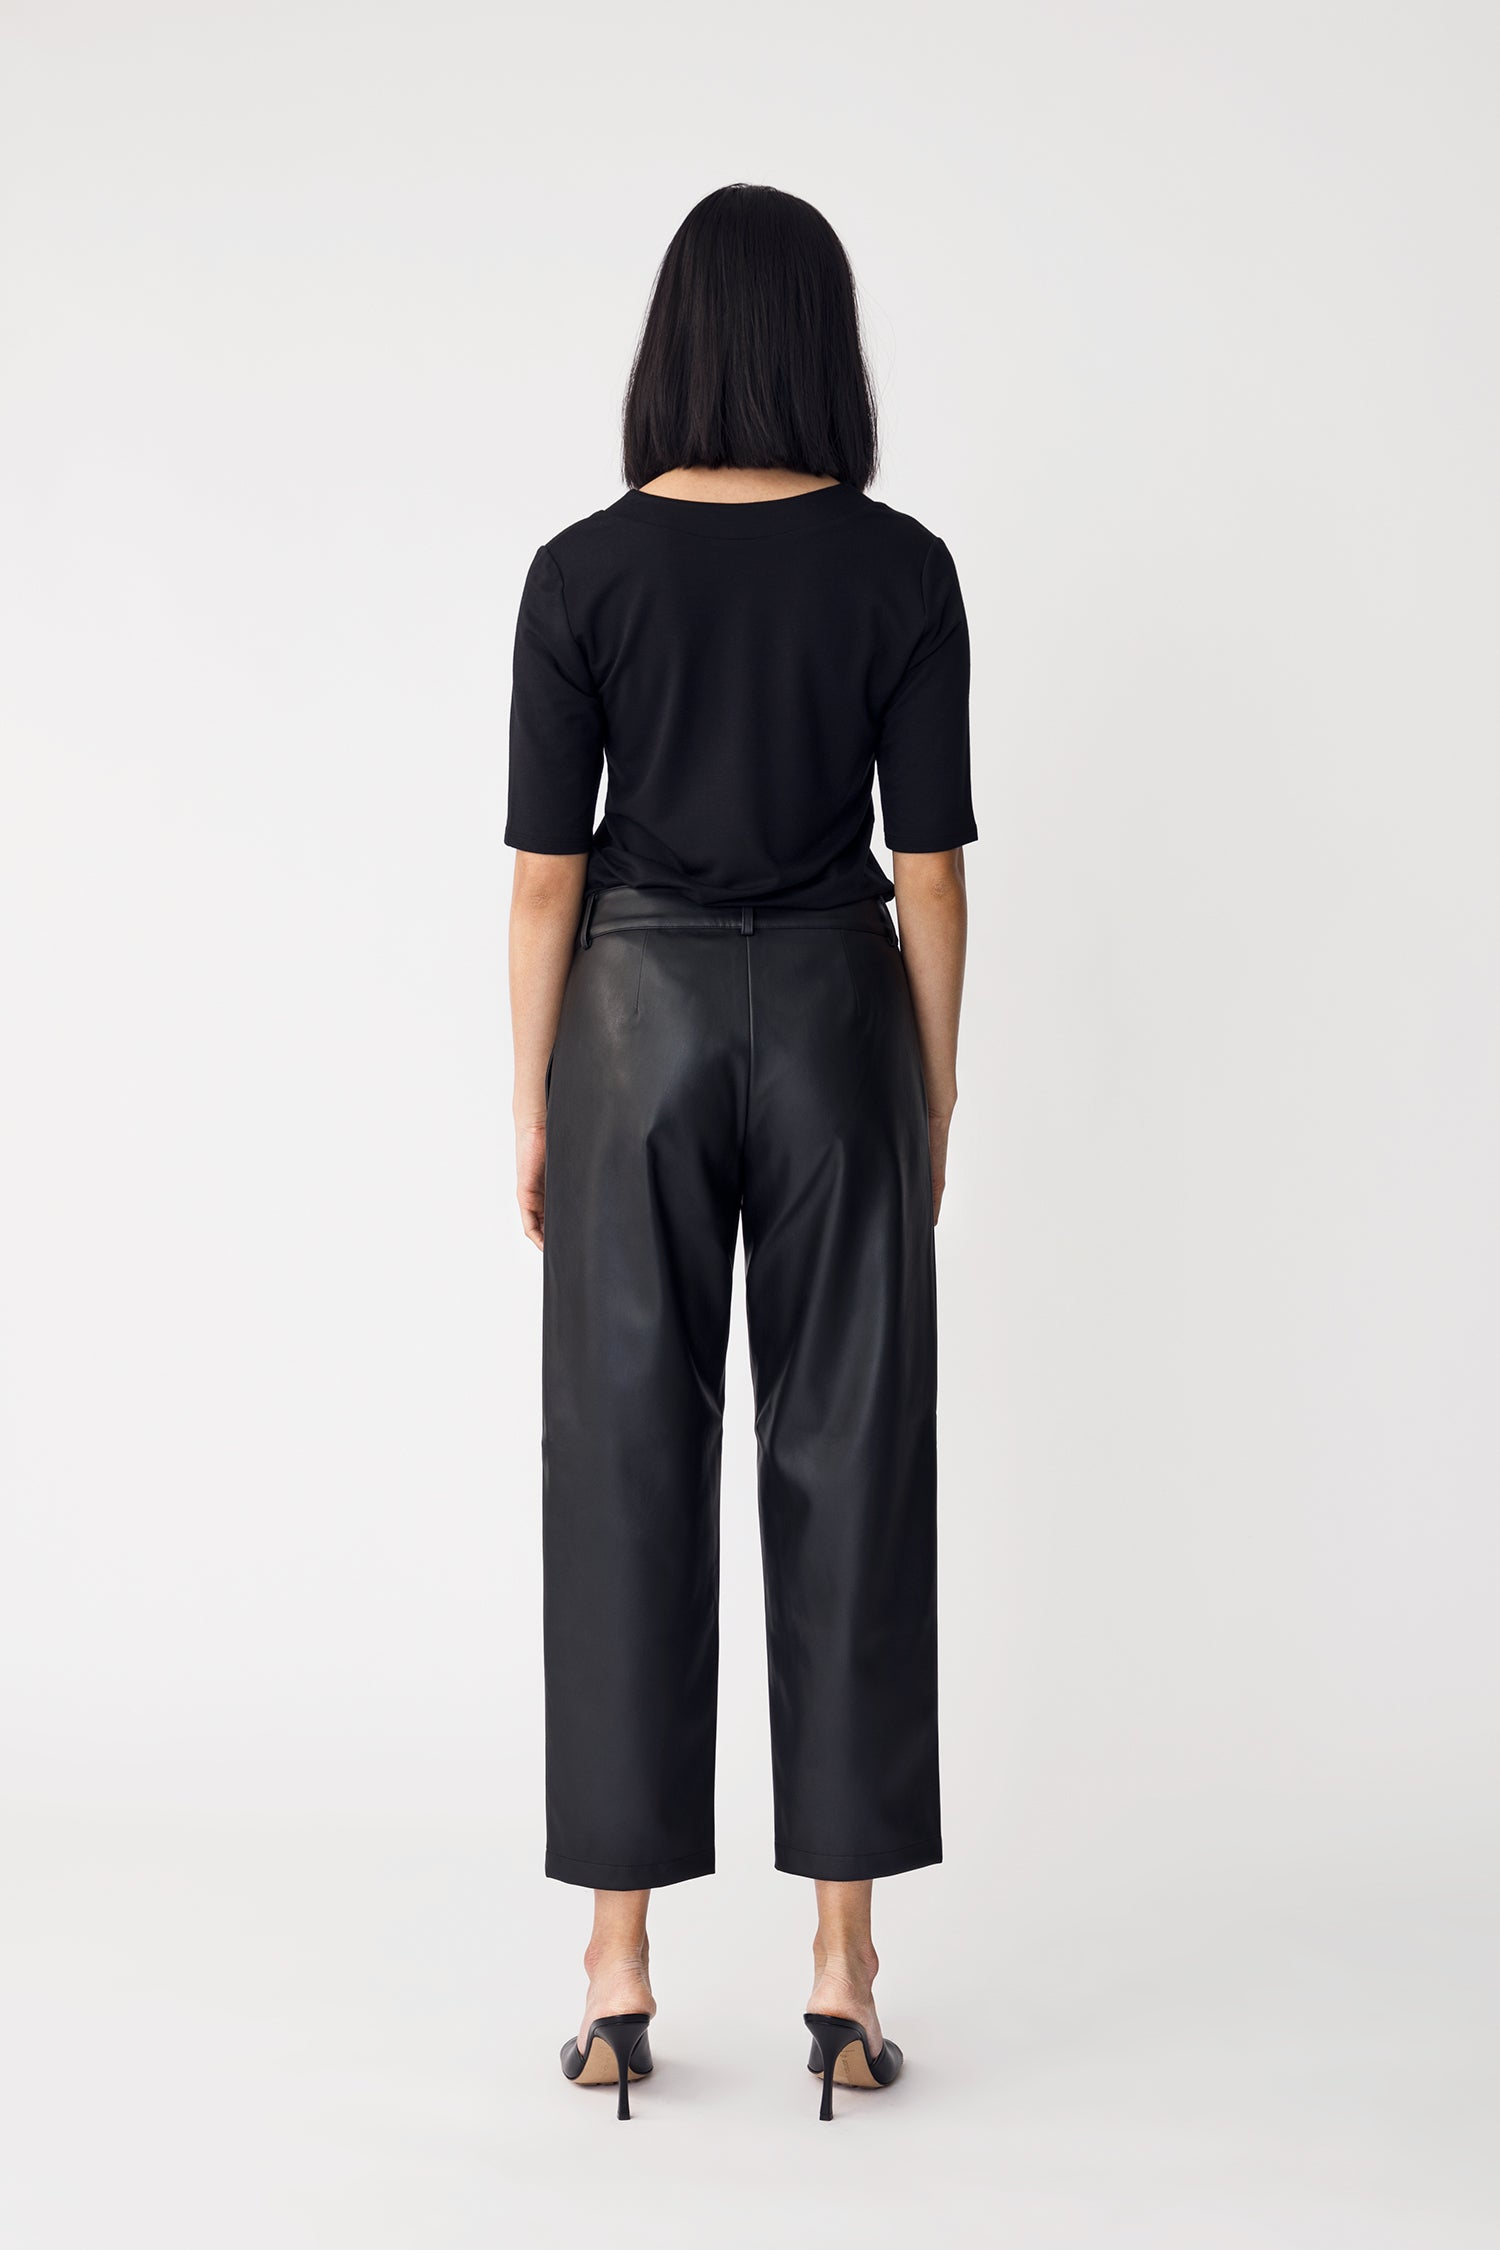 VERDE TROUSERS - BLACK